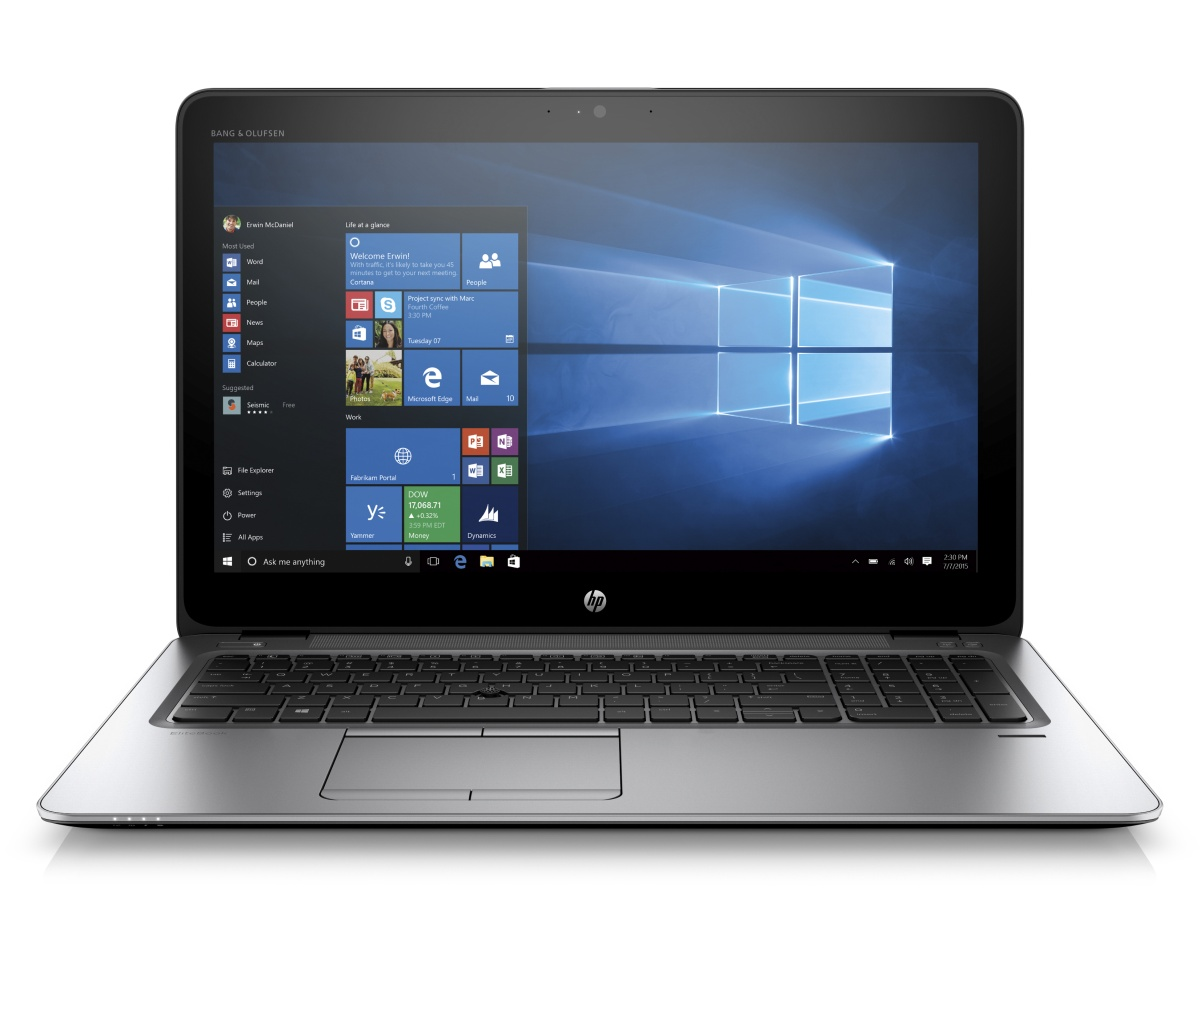 "HP EliteBook 755 G3 / 15,6"" 1366x768 HD / AMD A10-8700B / 4GB / 500GB / FpR / Win 10 Pro + Win7 Pro"